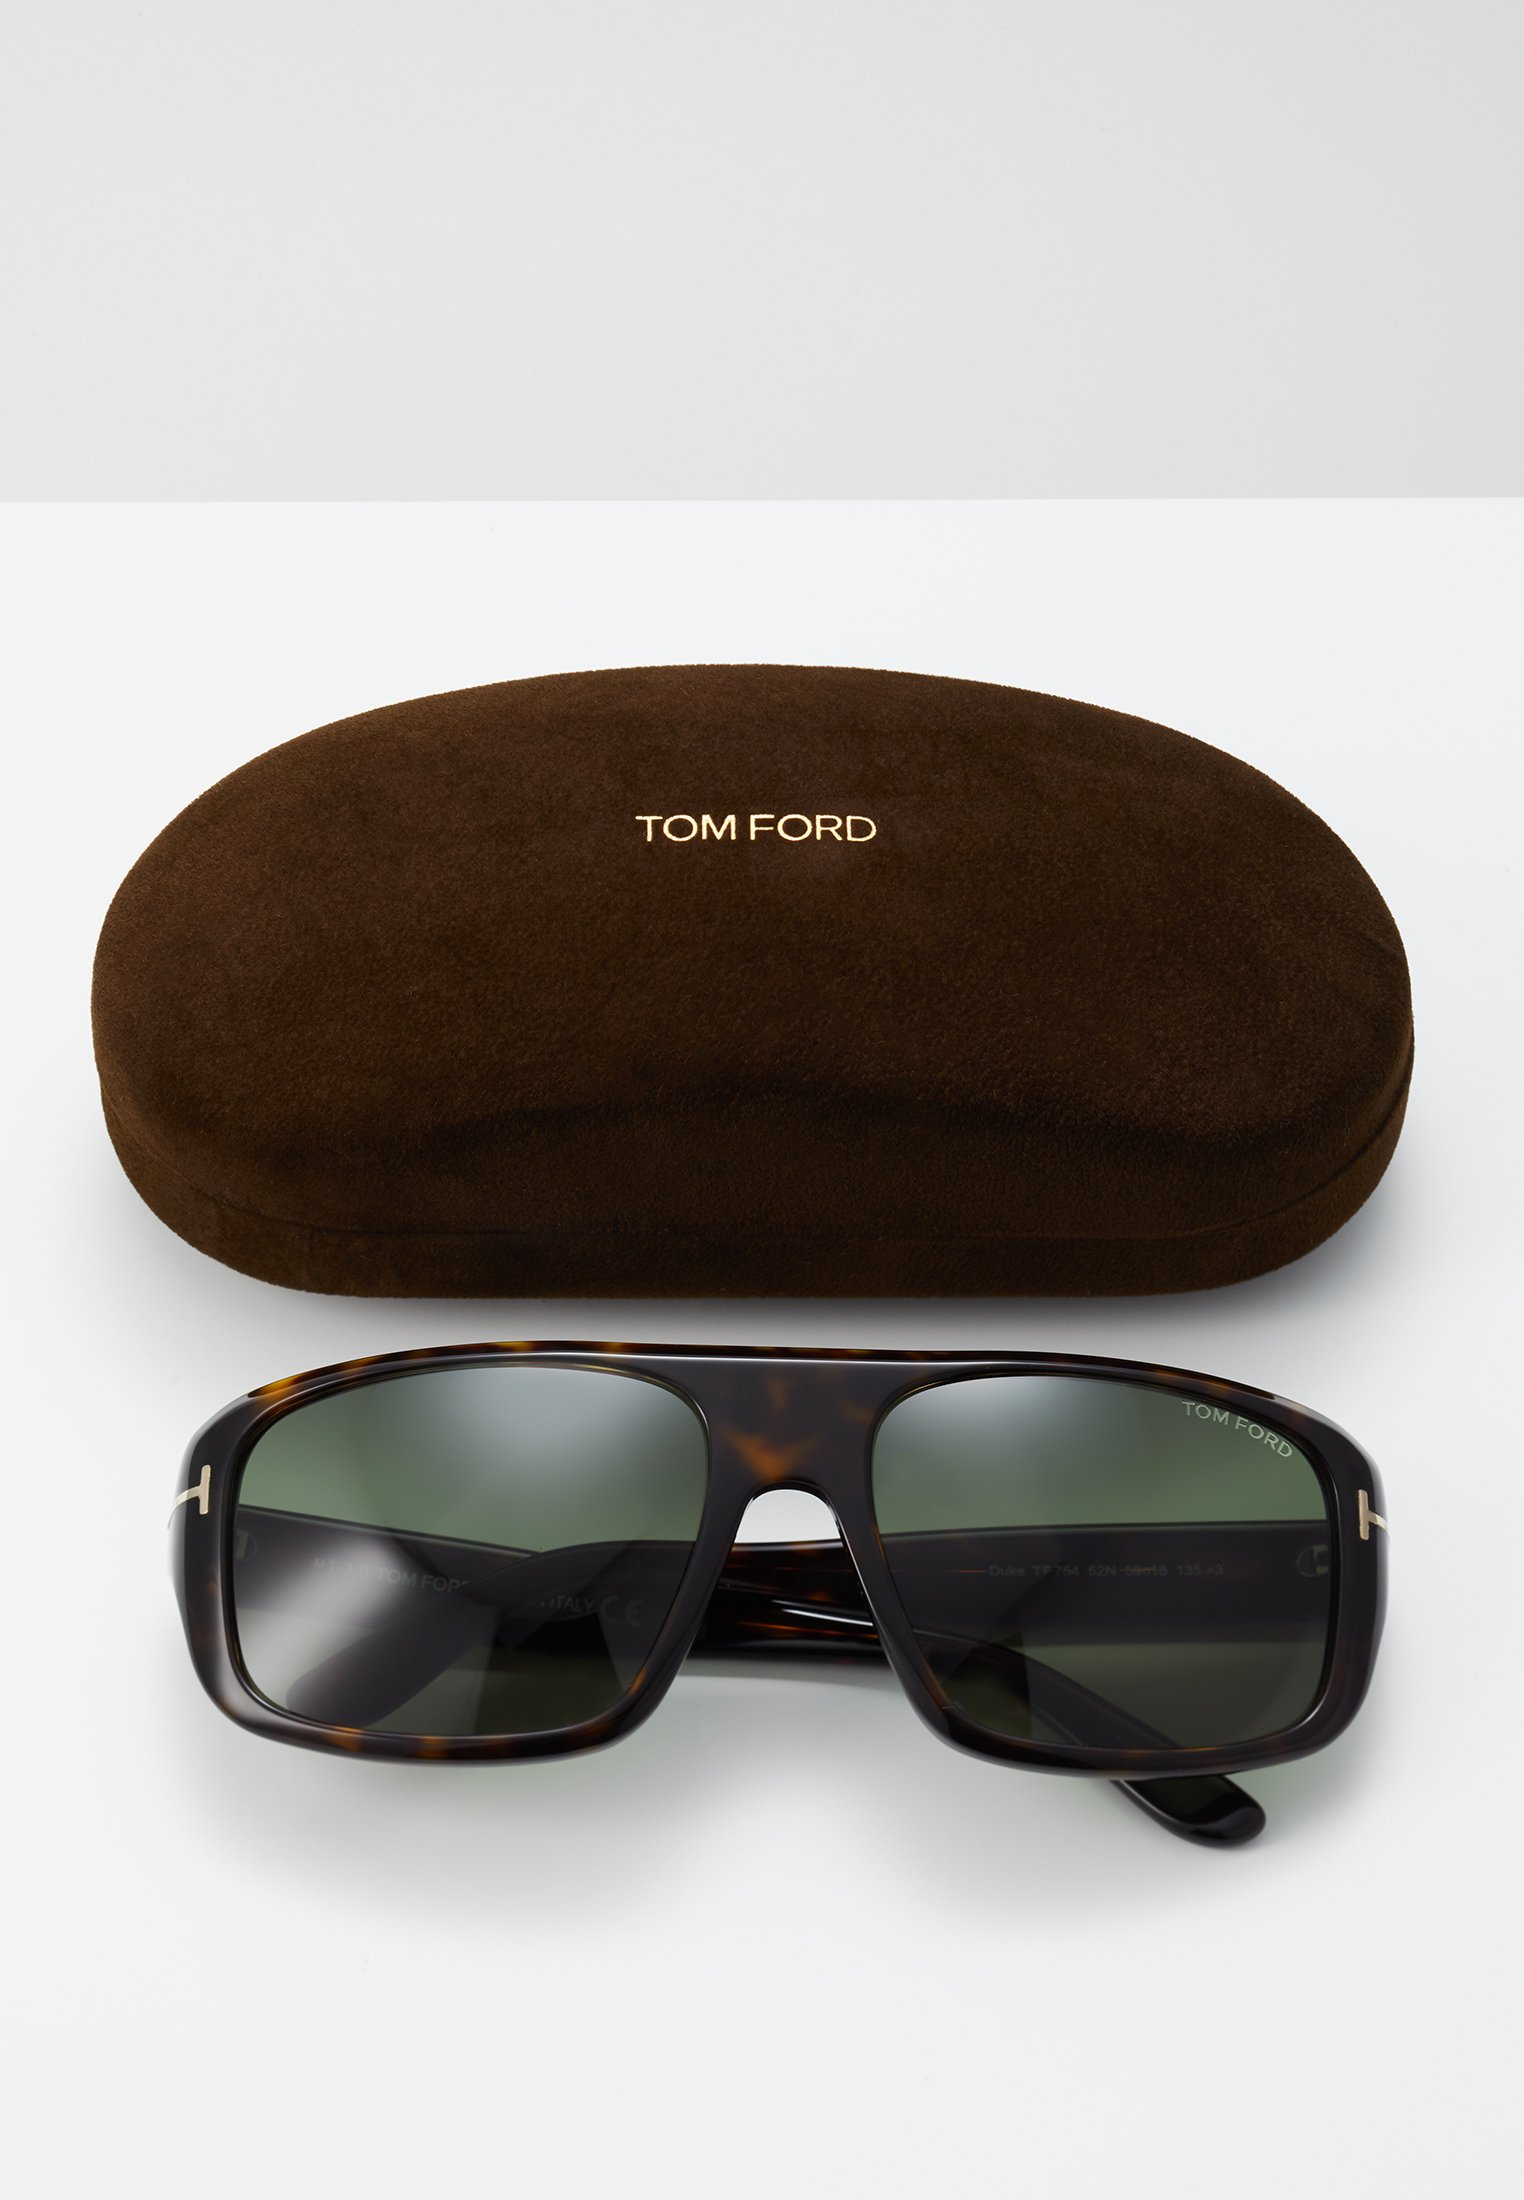 Excellent Outlet Tom Ford Sunglasses - havana | men's accessories 2020 R96RY